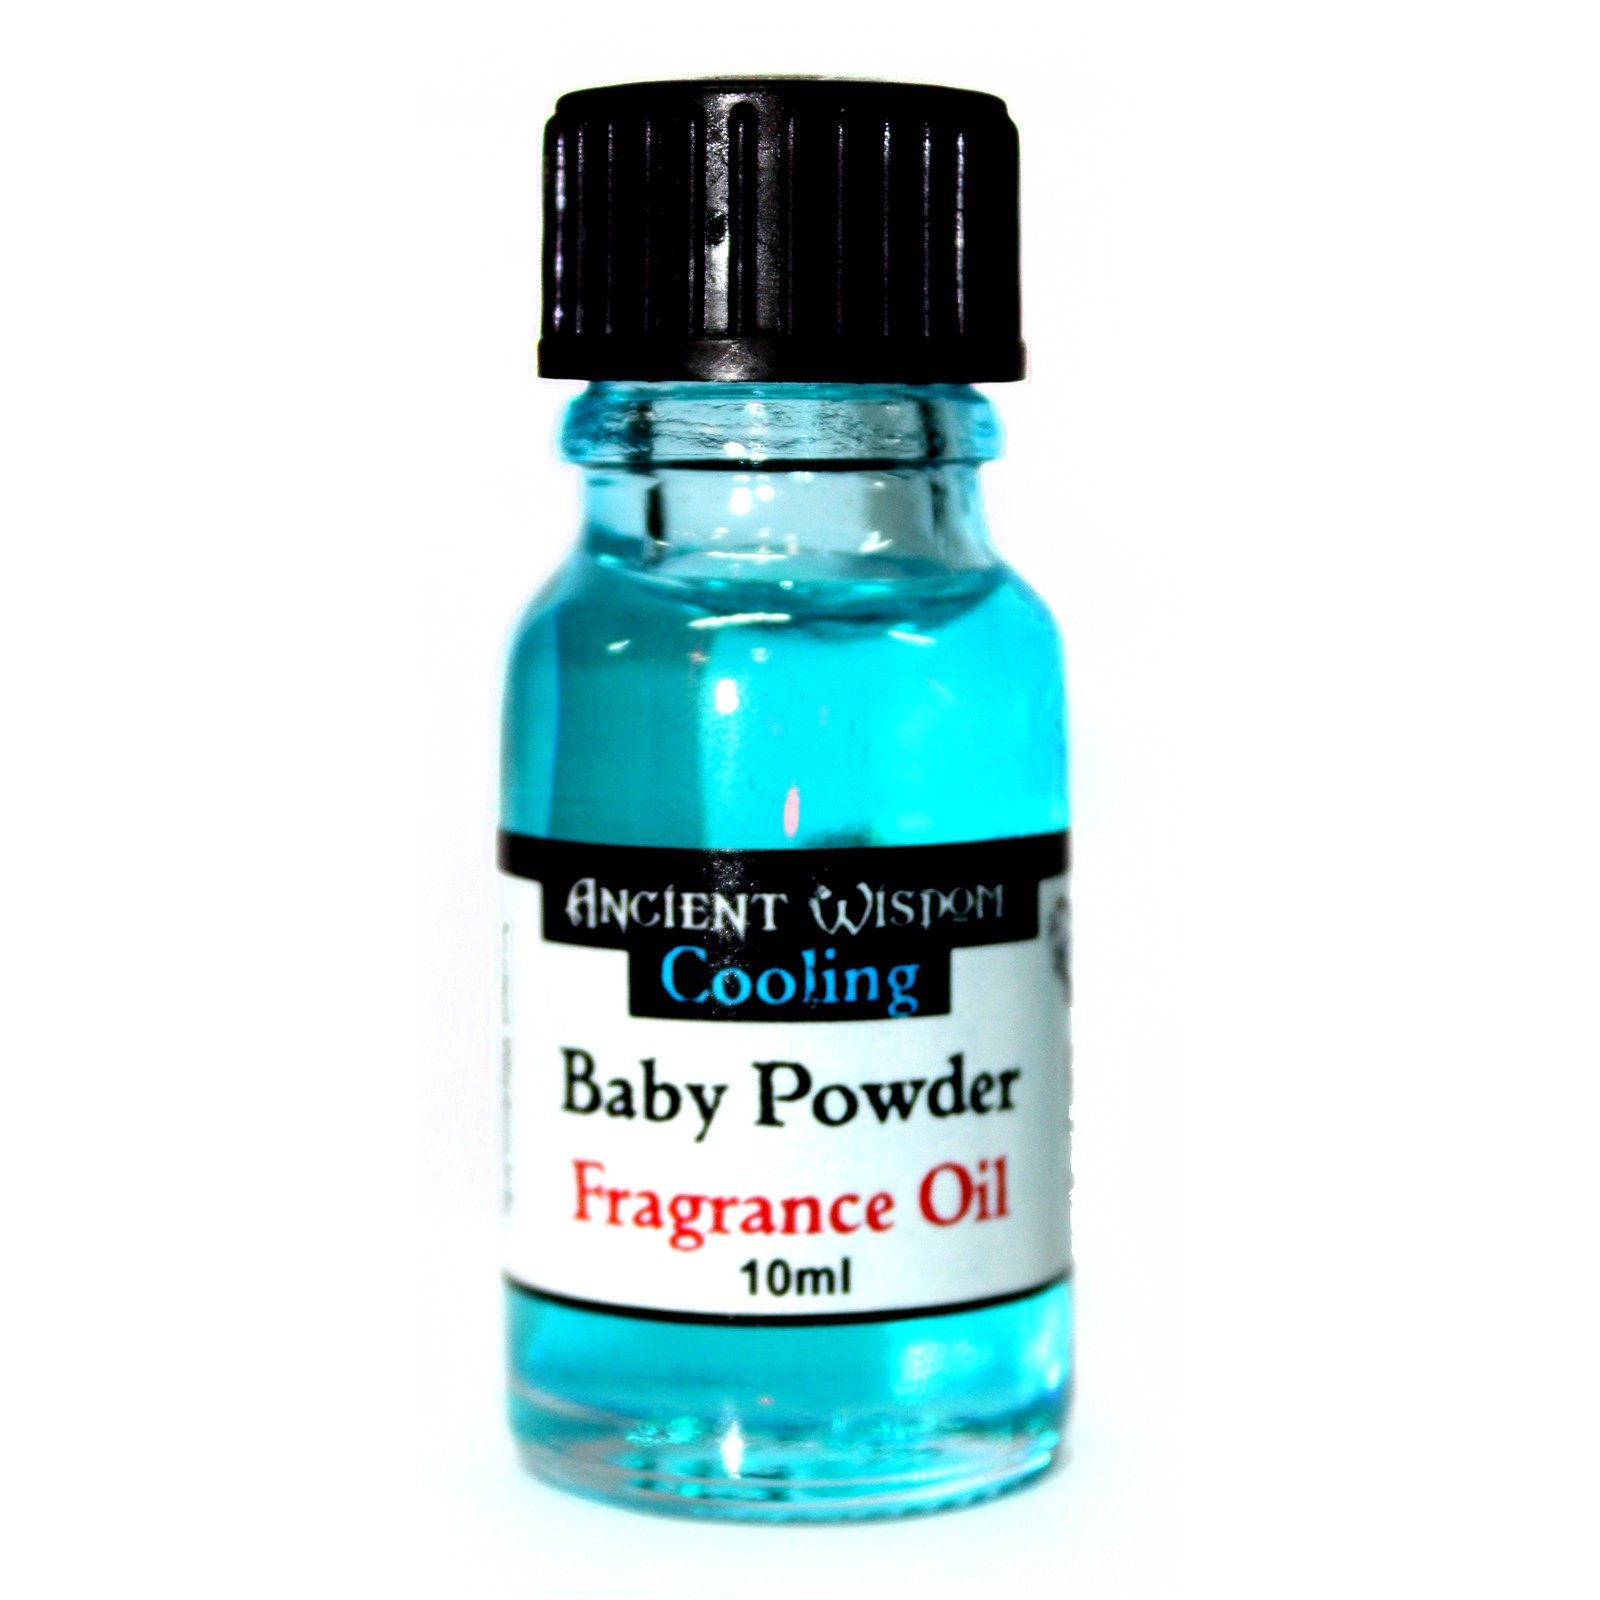 10ml Baby Powder Fragrance Oil